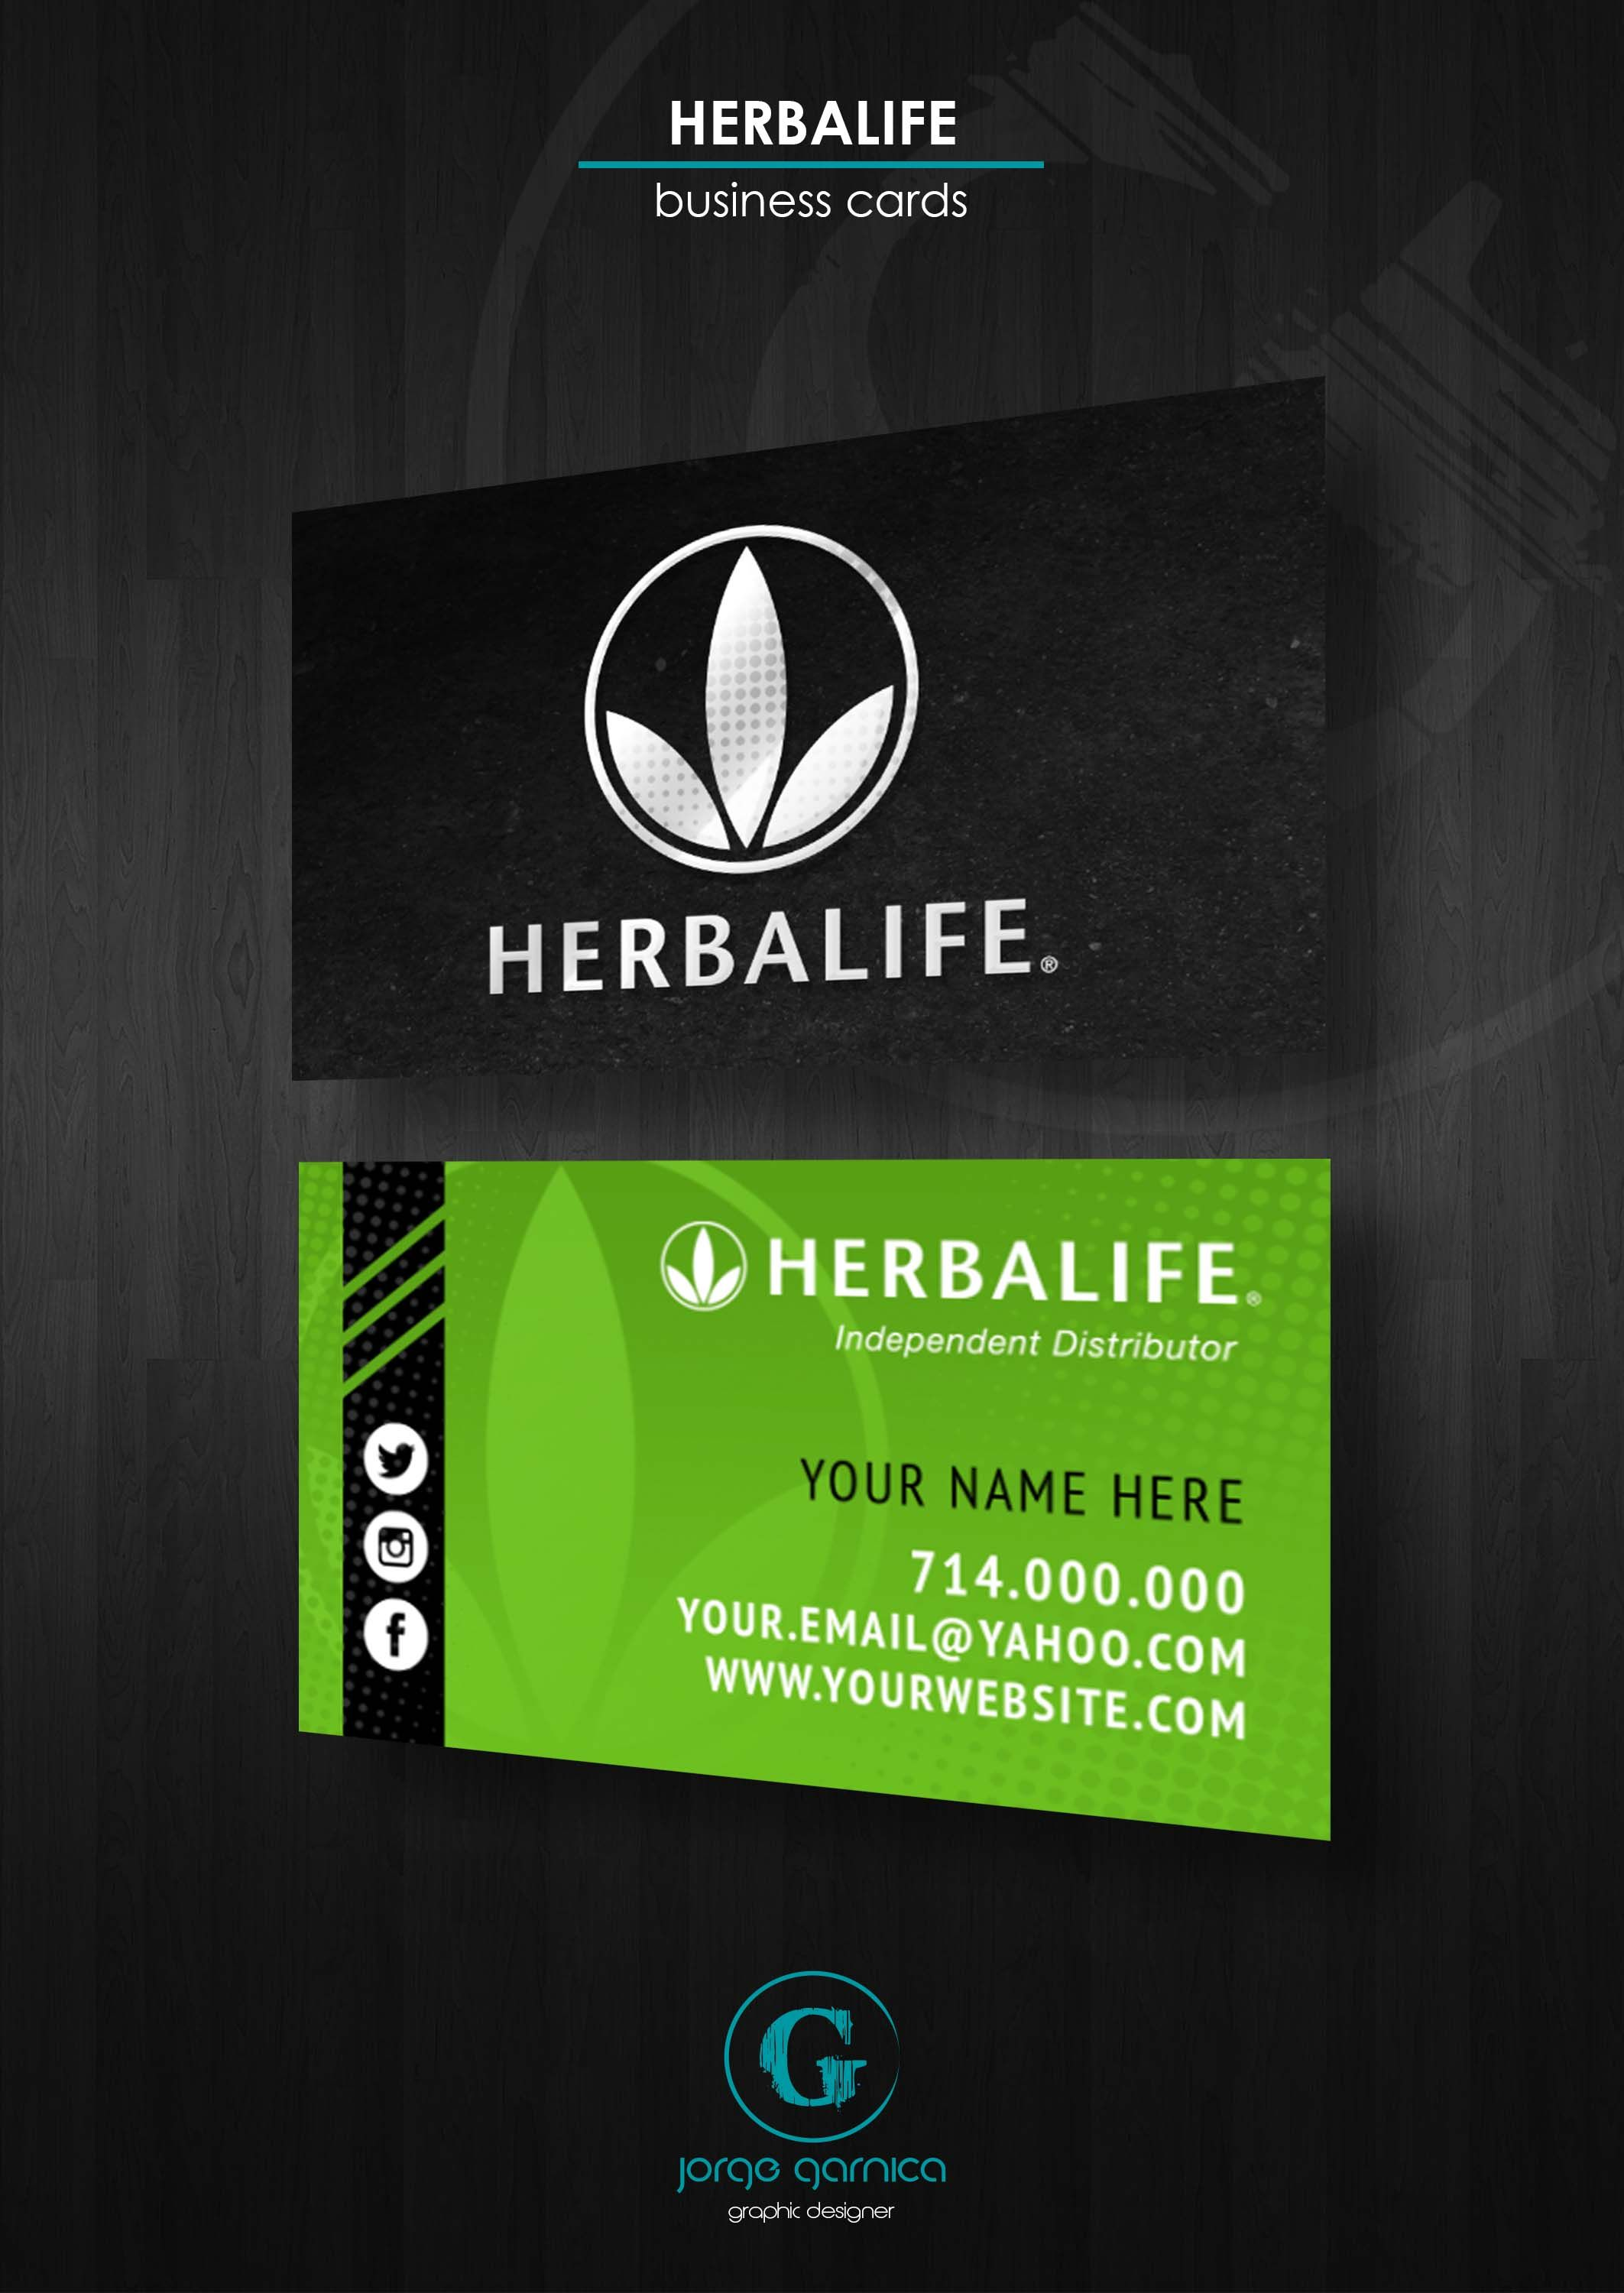 Herbalife Business Card Design Template Herbalife Pinterest